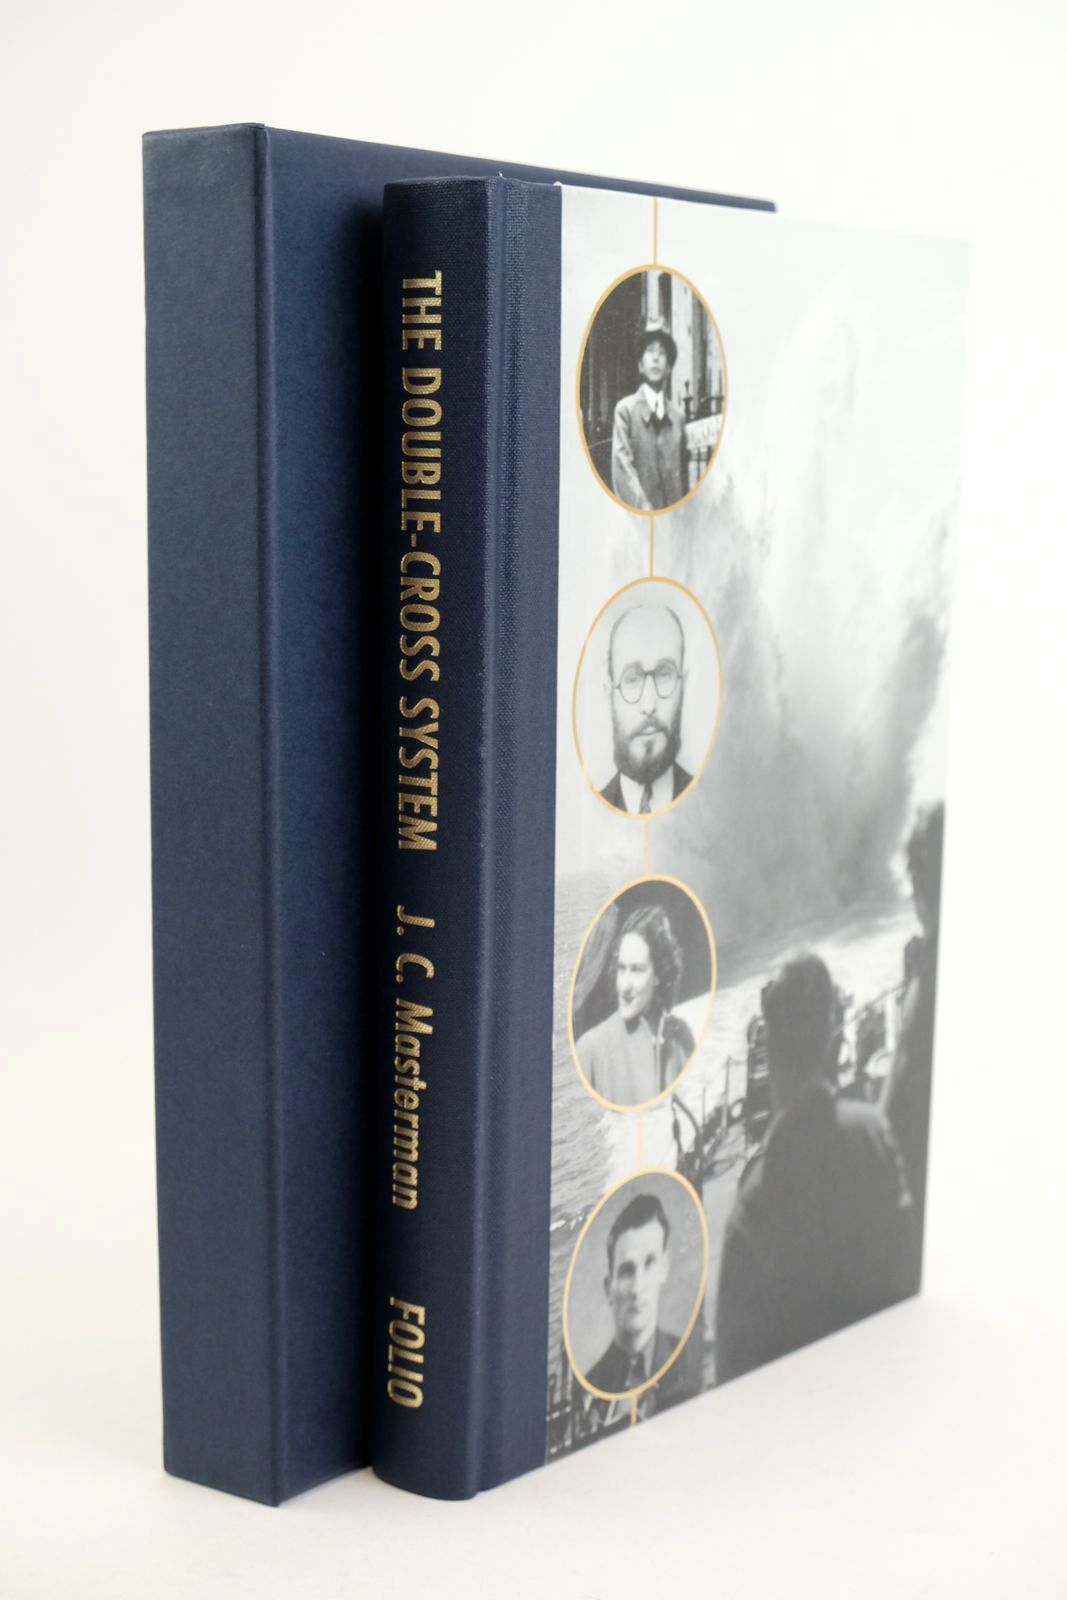 Photo of THE DOUBLE-CROSS SYSTEM IN THE WAR OF 1939 TO 1945 written by Masterman, J.C. Foot, M.R.D. published by Folio Society (STOCK CODE: 1318917)  for sale by Stella & Rose's Books